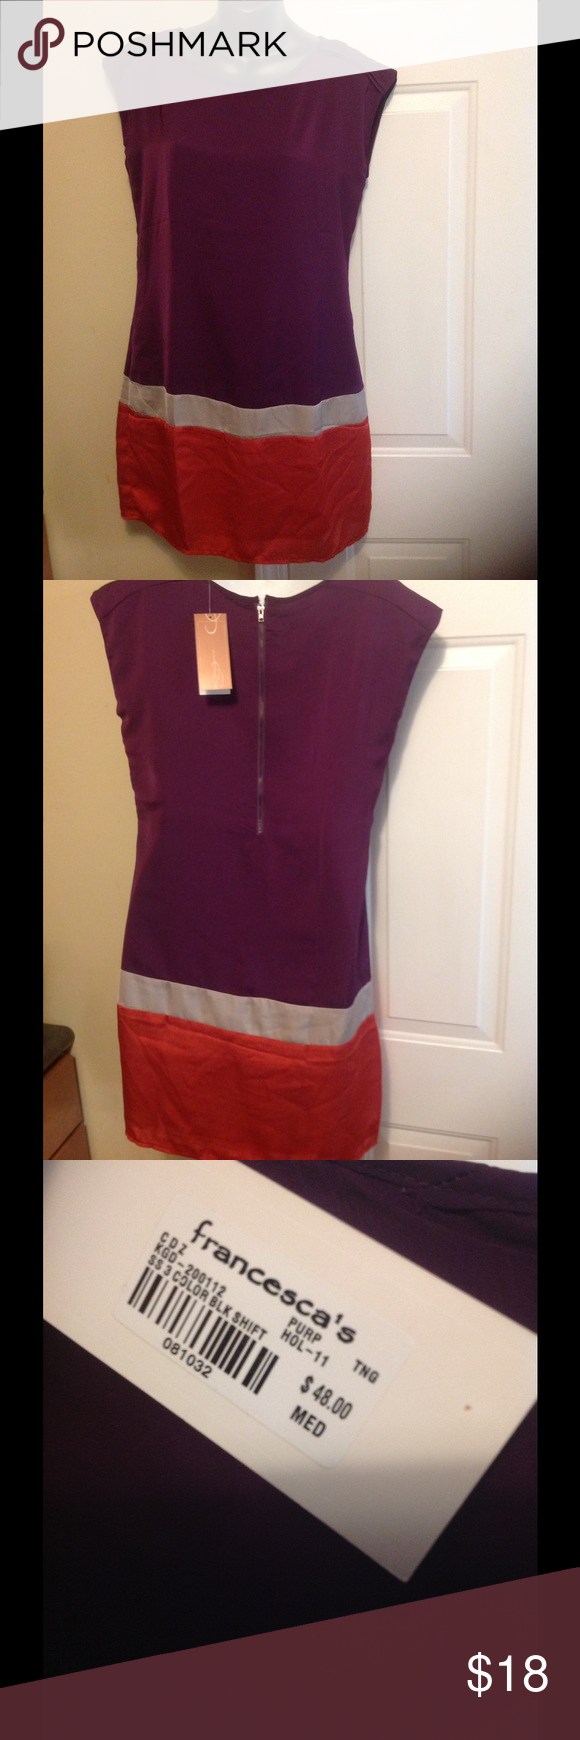 🆕 Criss Cross color block shift dress 🆕 Criss Cross color block shift dress bought from Francesca's. Size medium (fits like a small). Colors are purple, tan & orange. Never worn, but would be super cute with leggings too. Francesca's Collections Dresses Mini